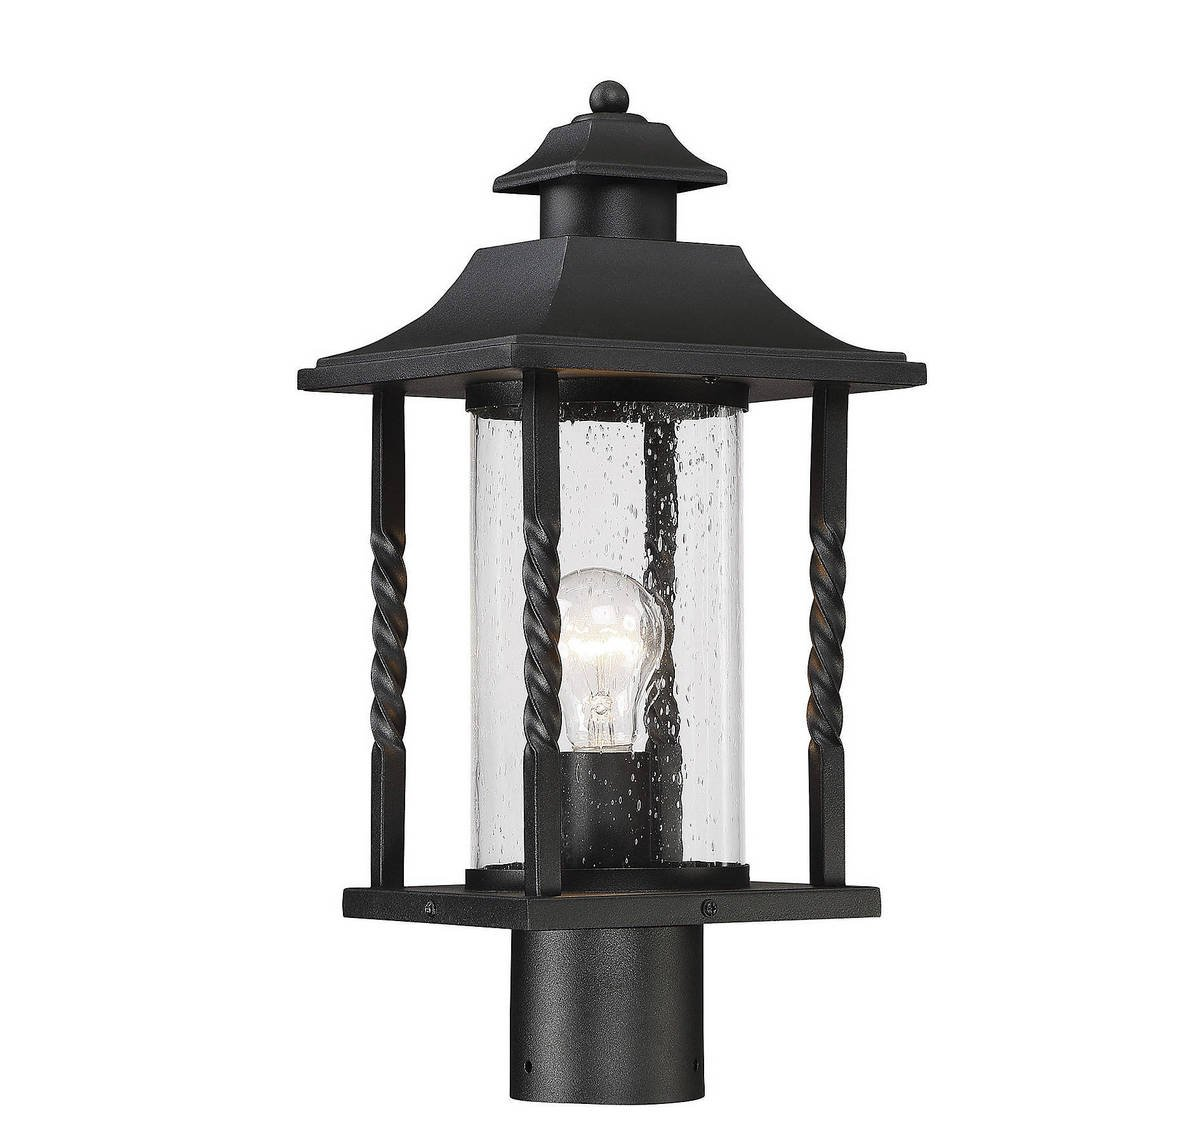 Savoy House 5-1233-BK Dorado Post Lantern in Black by Savoy House